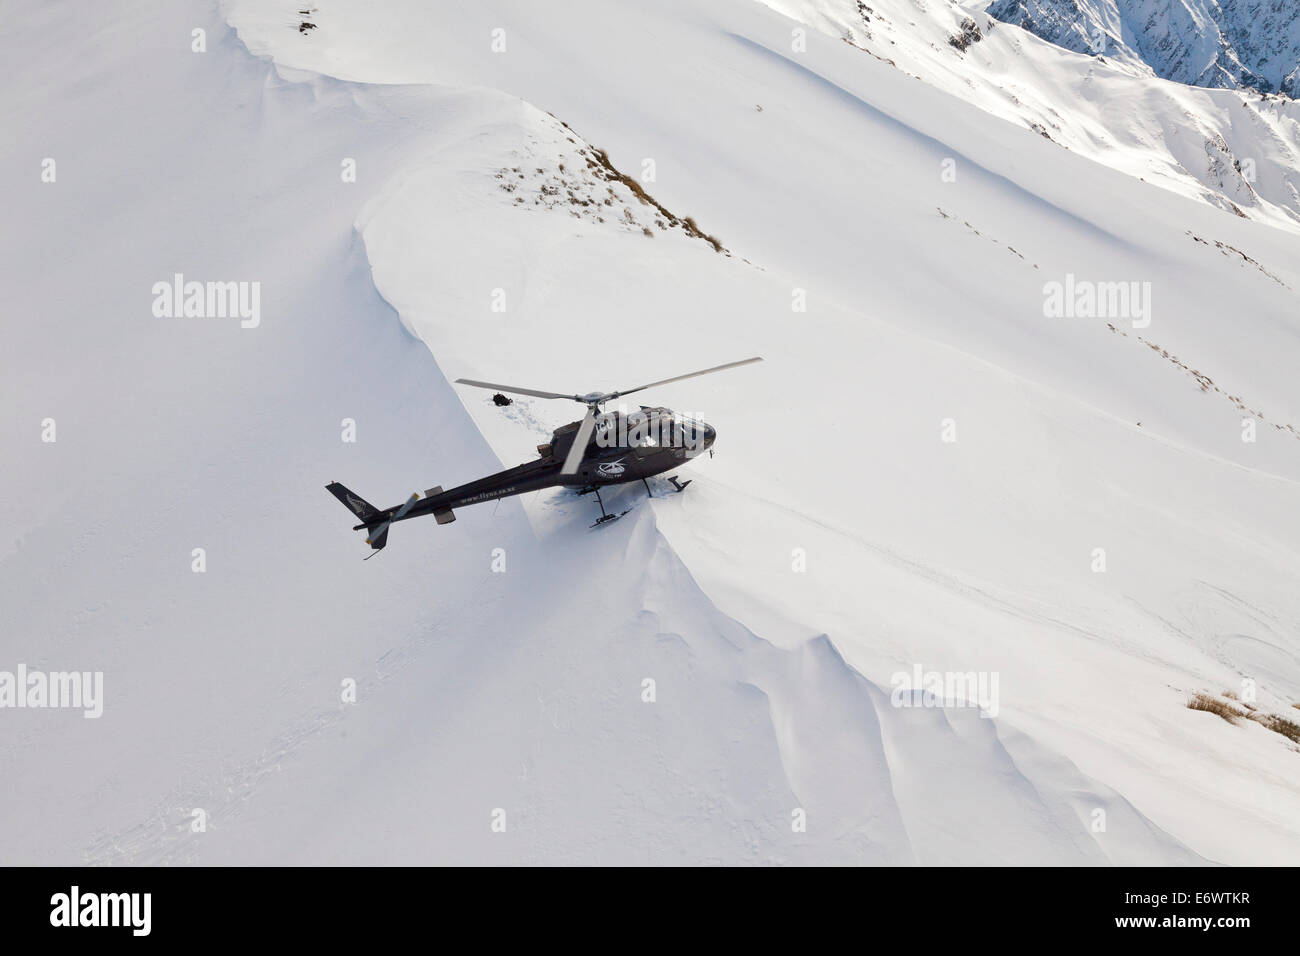 Helicopter landing with skiers and snowboarders in deep snow, Winter sport, Heliskiing, South Island, New Zealand - Stock Image